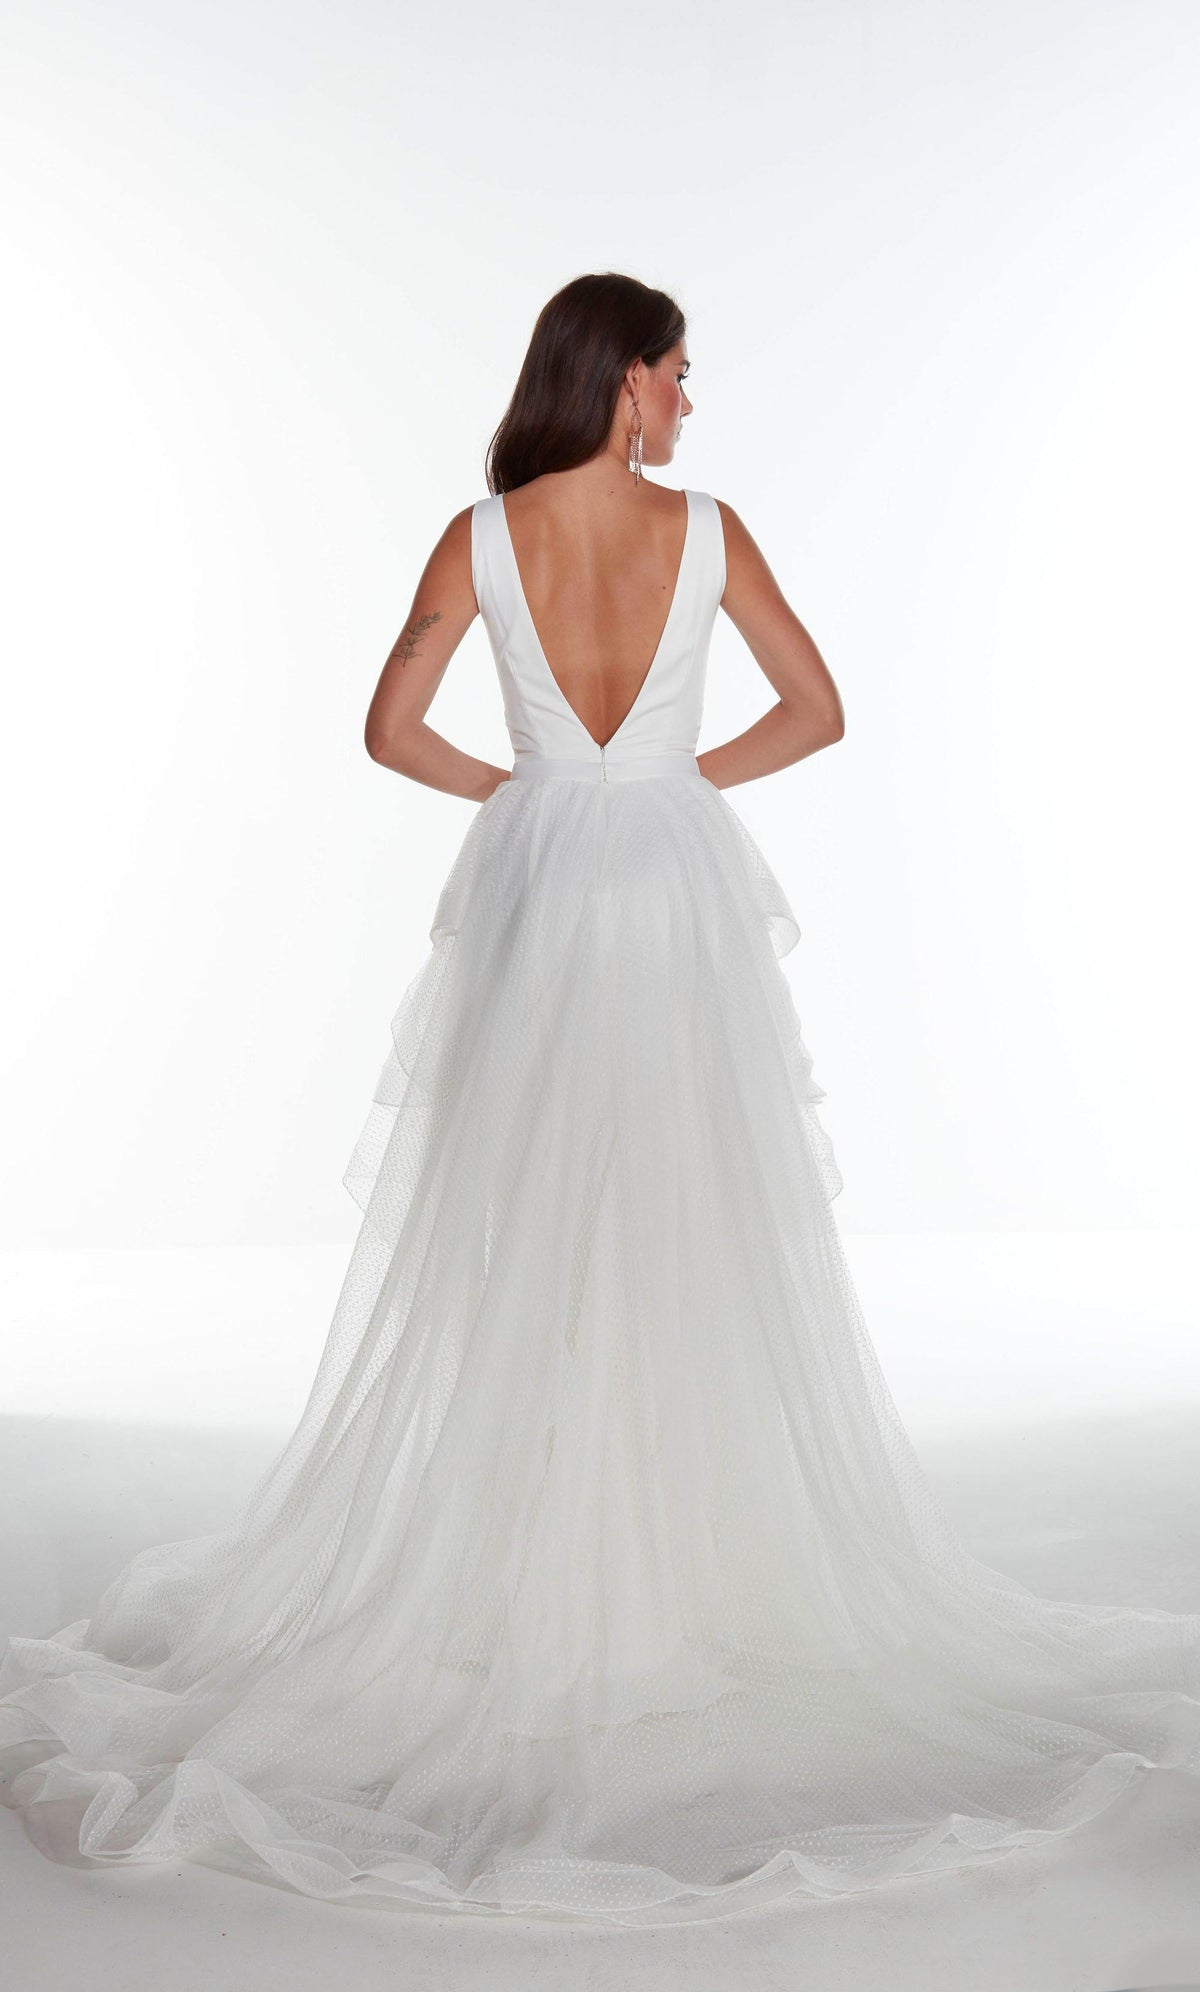 Diamond White satin informal bridal gown with a V shaped back and detachable, layered overskirt